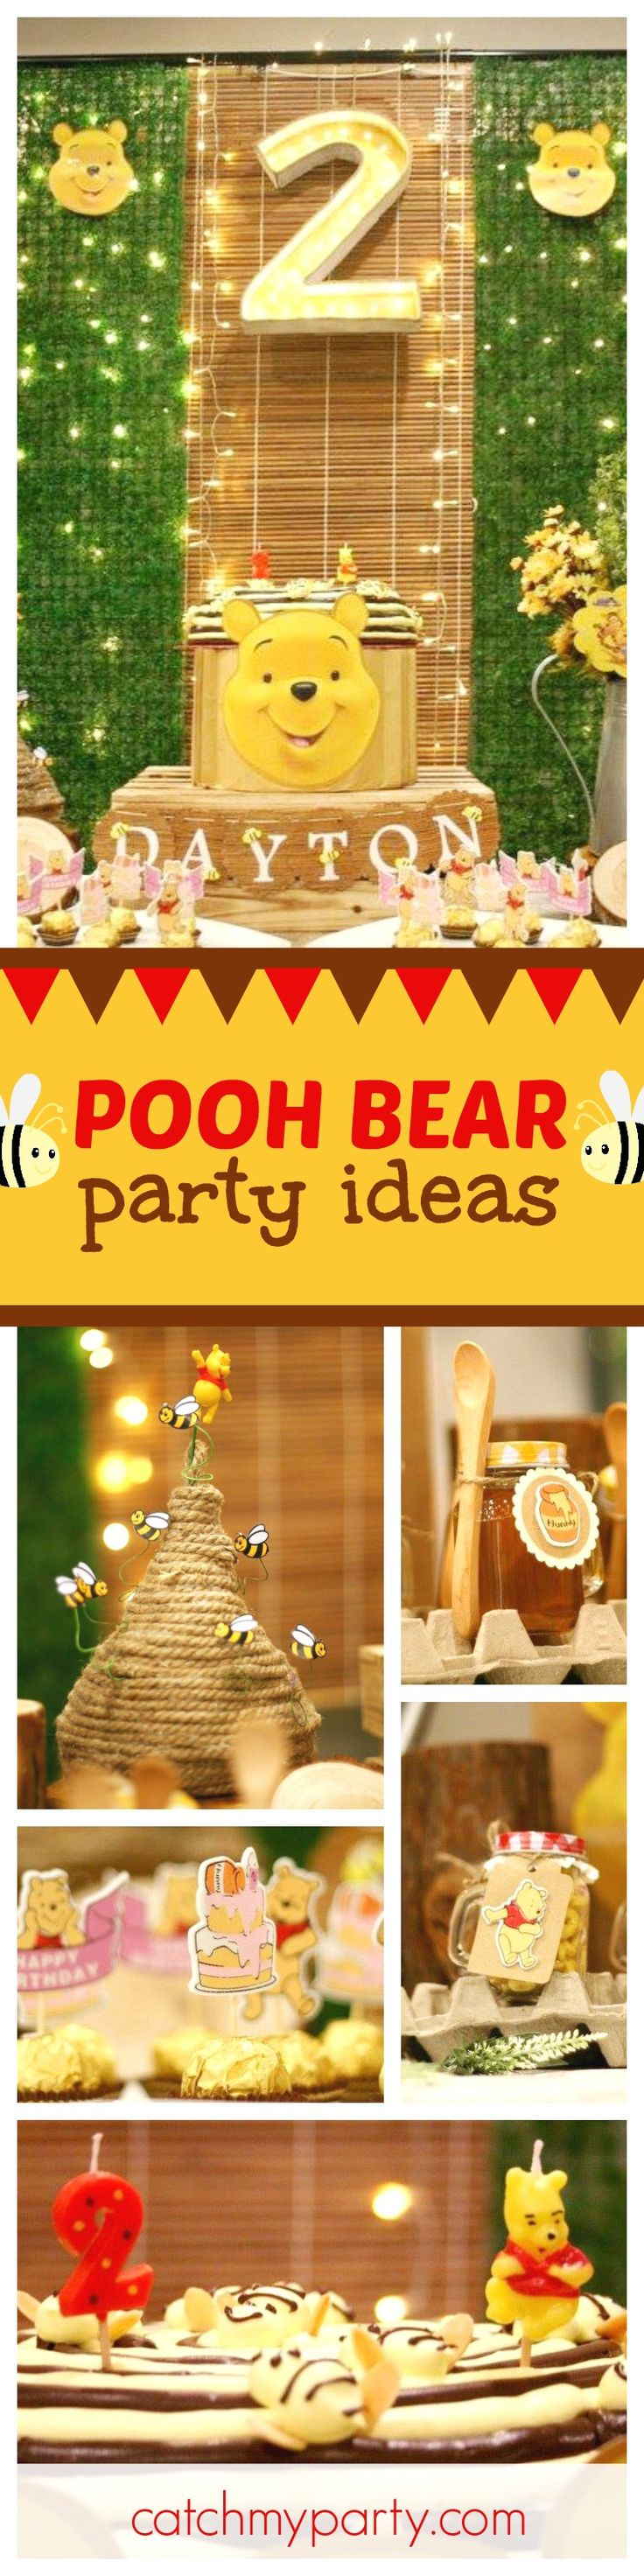 95 best Winnie the Pooh Party Ideas images on Pinterest | Pooh bear ...